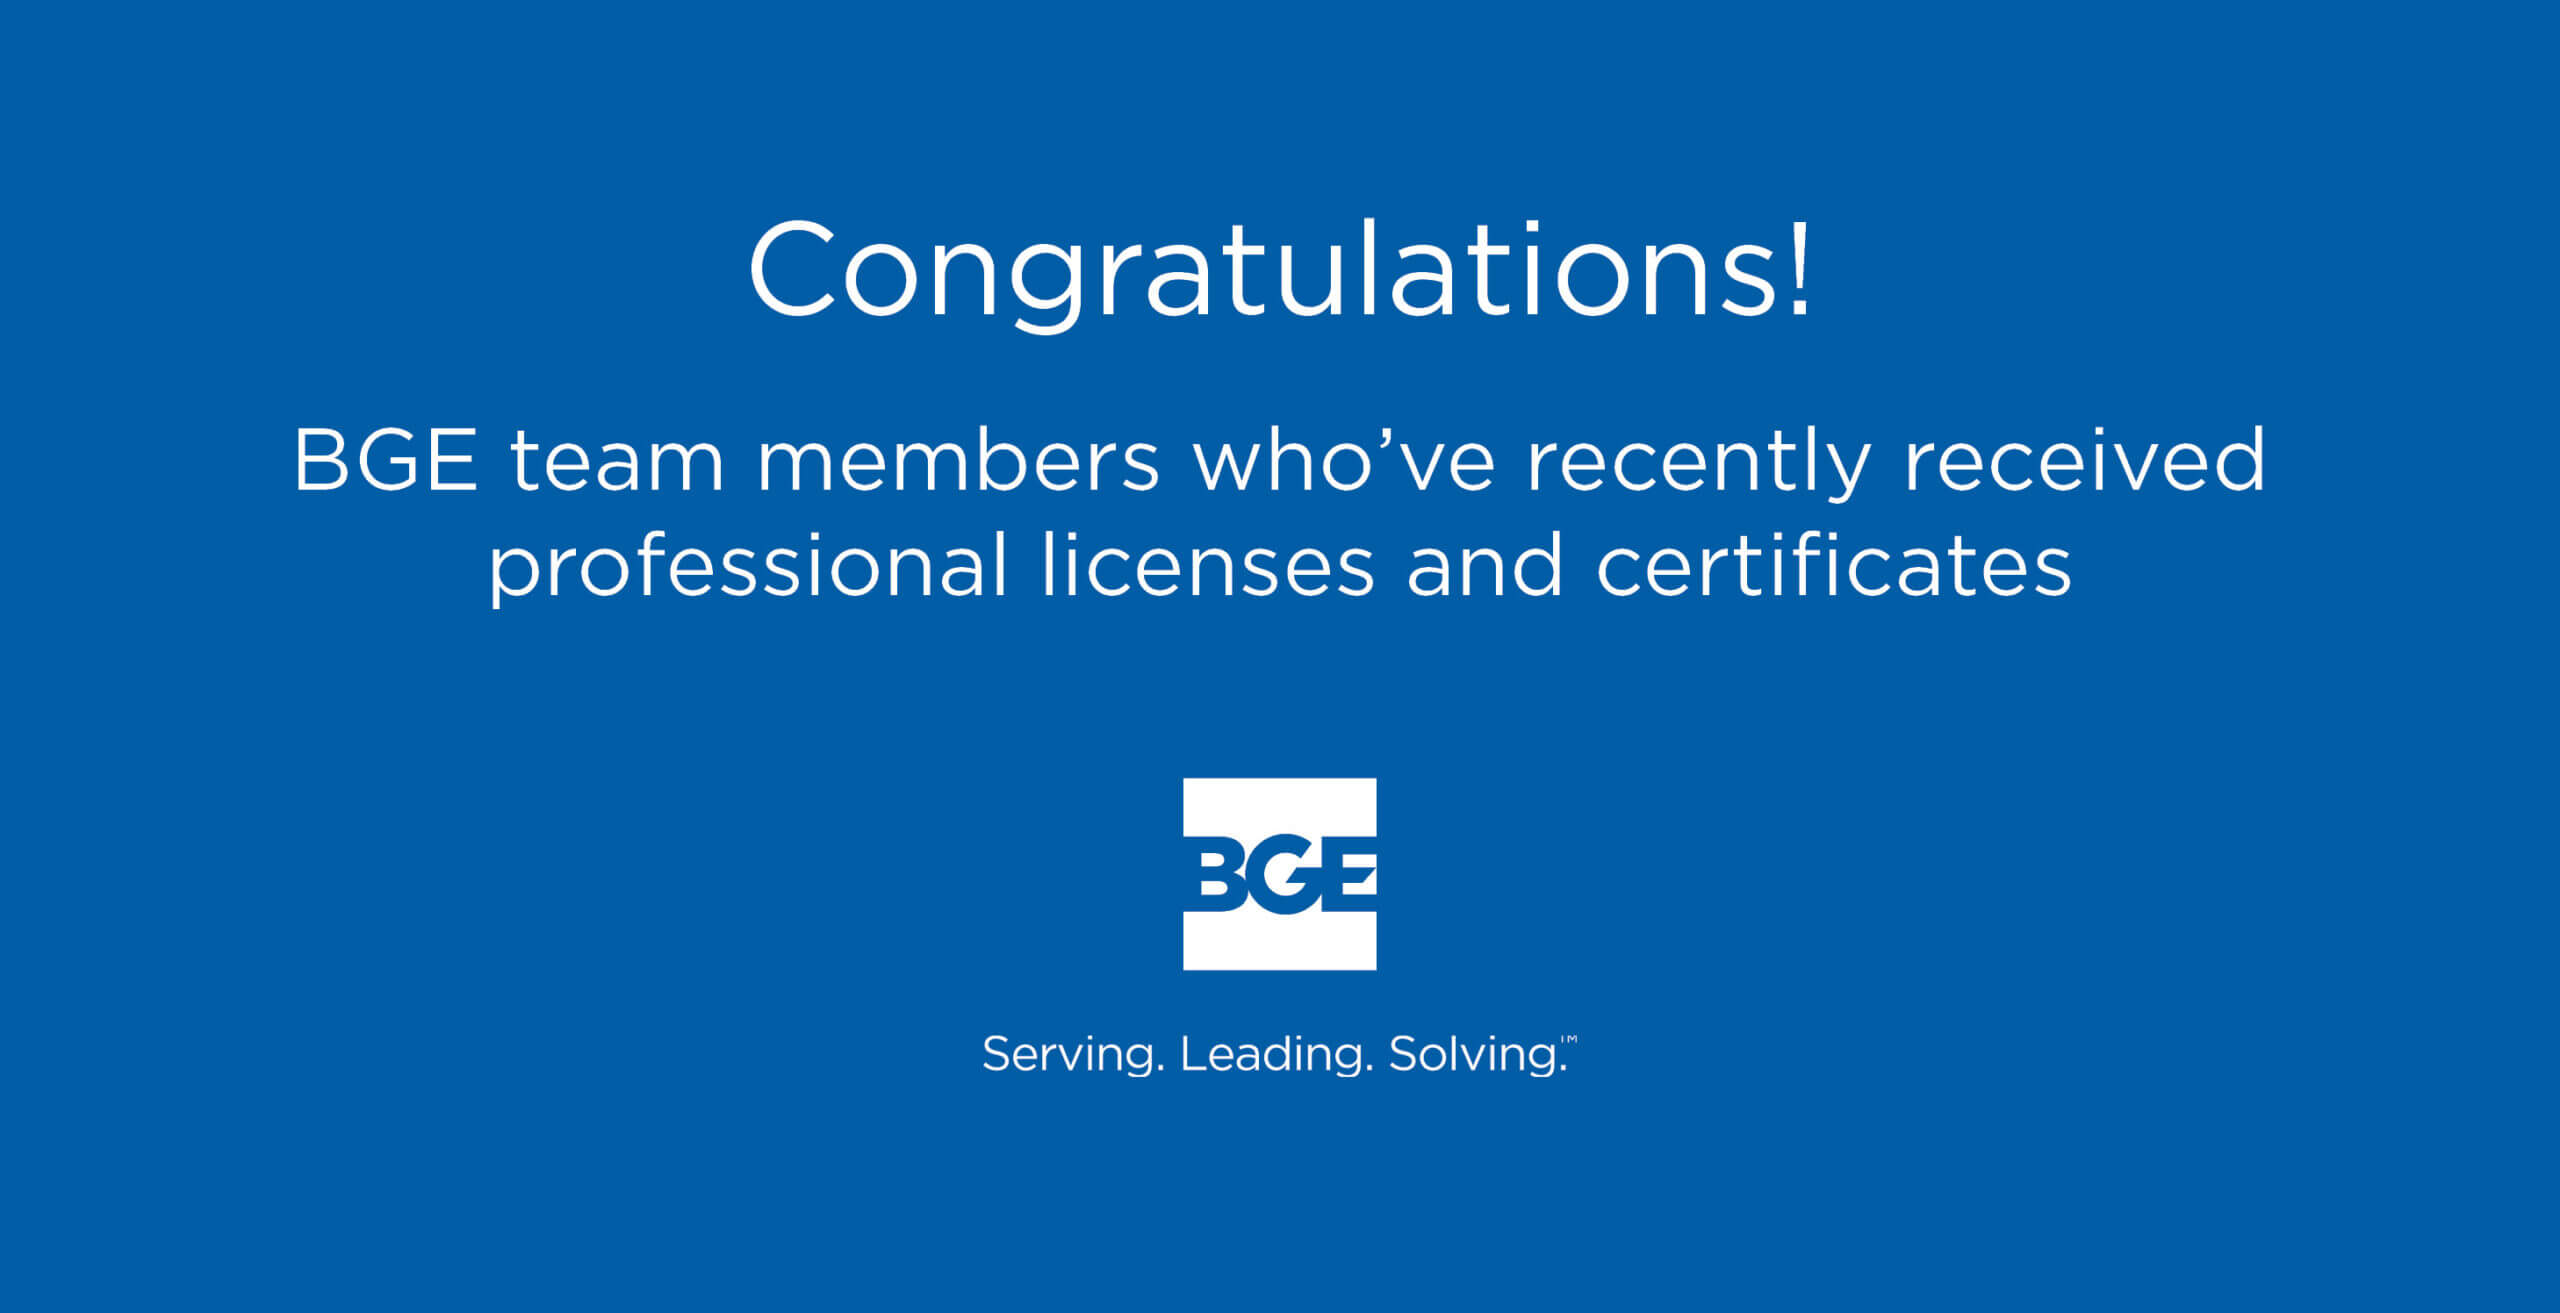 BGE Announces Its Newest Professional Licenses and Certificate Holders